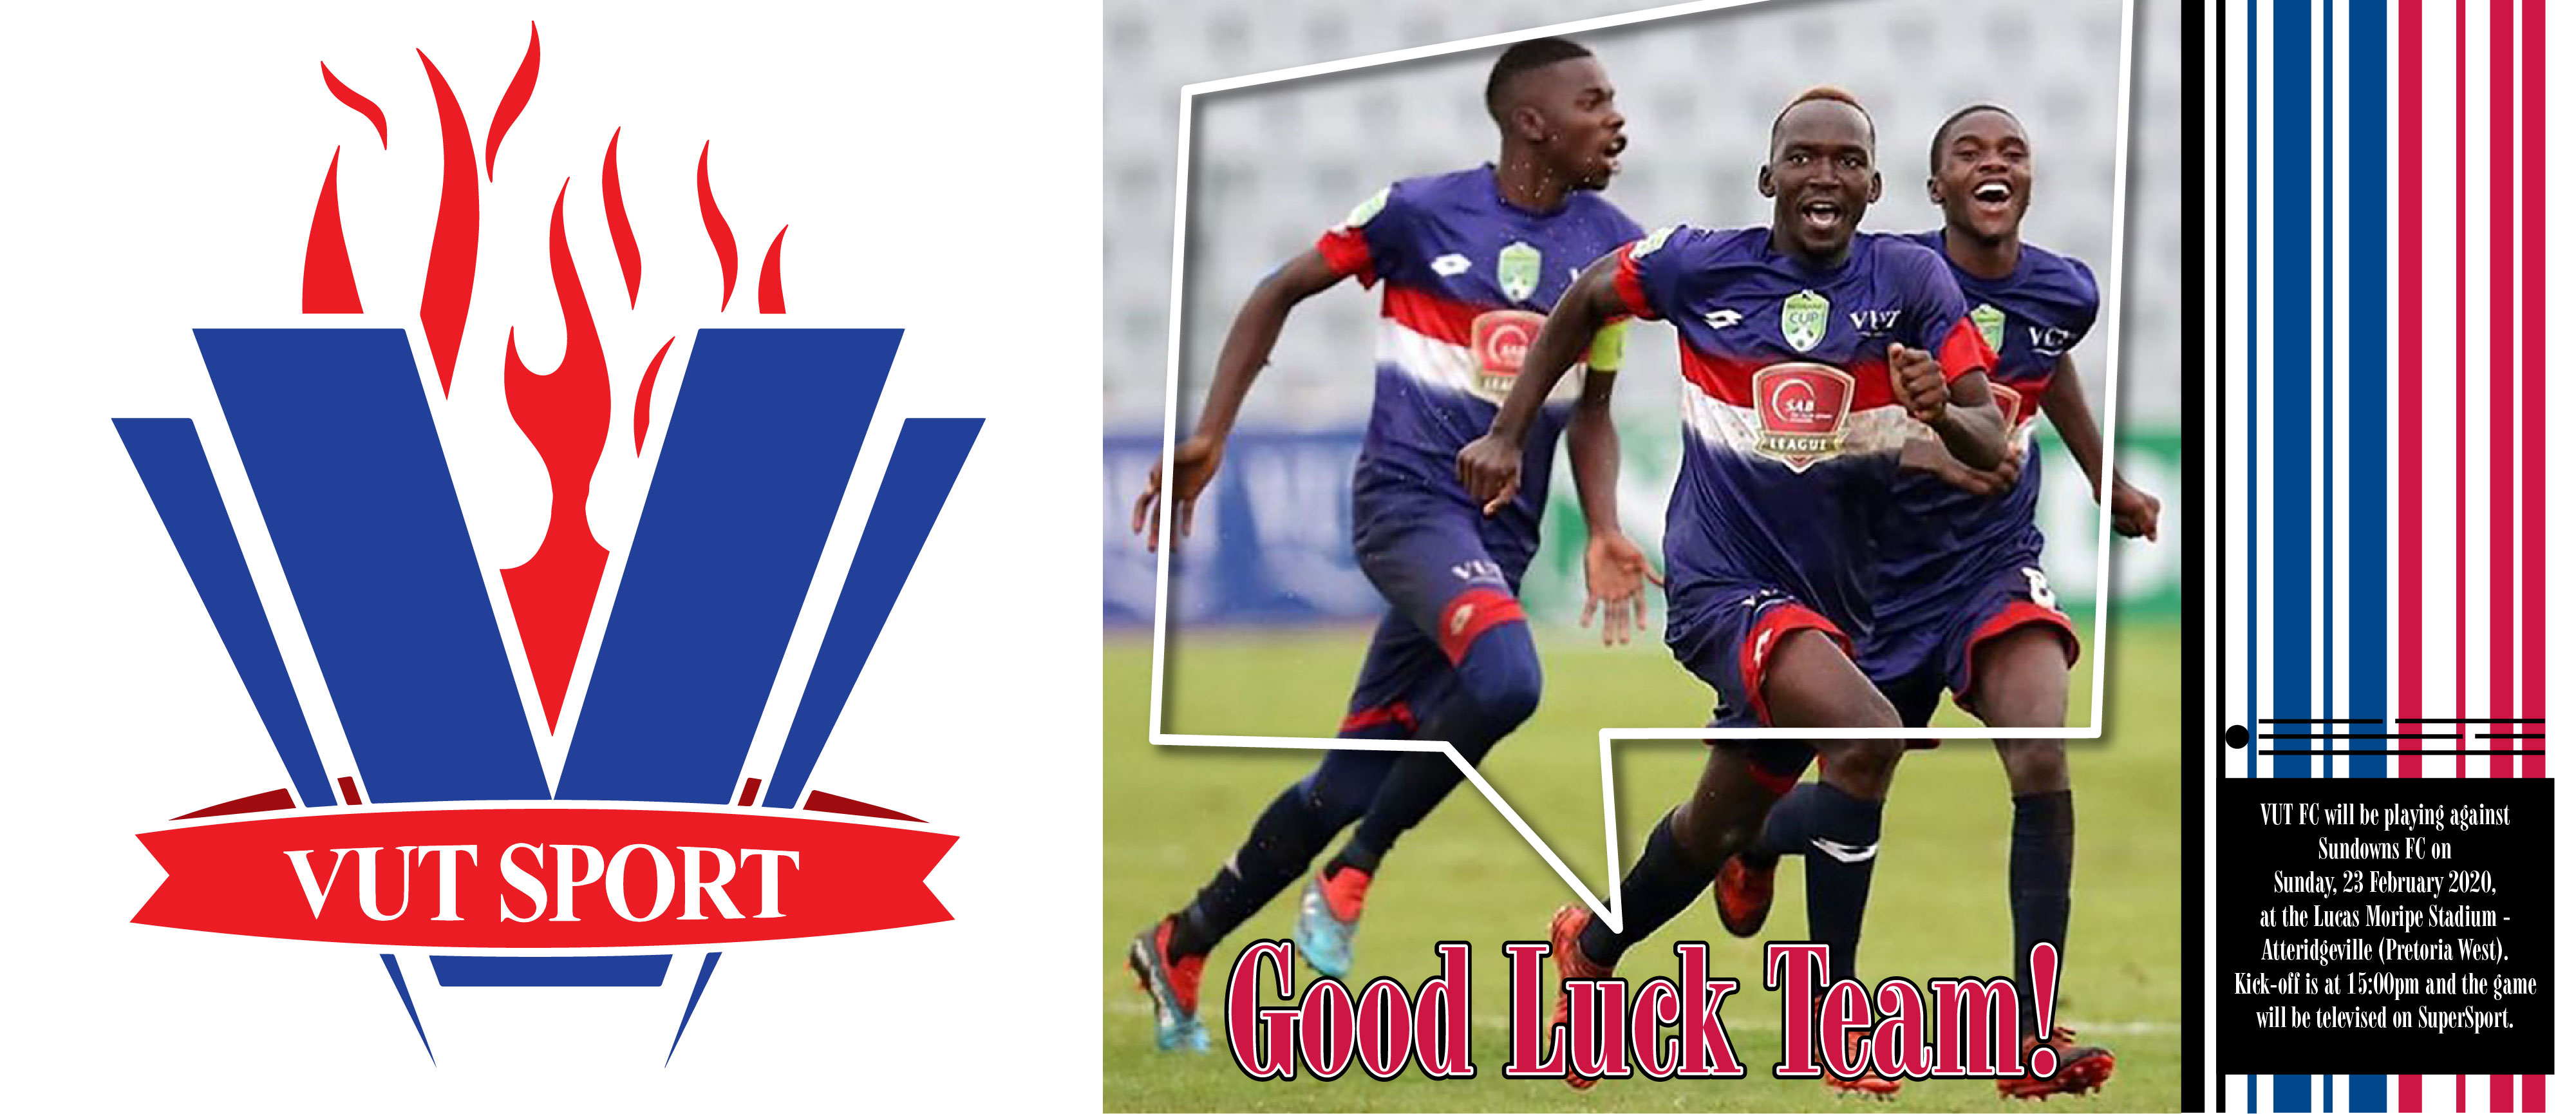 BEST OF LUCK TO THE BLUE TEAM 'VUT FC' as they will be playing against Sundows FC on Sunday, 23 February 2020, Lucas Moripe Stadium-Atteridgeville (Pretoria West). Kick-off is at 15:00pm and the game will be televised on SuperSport.